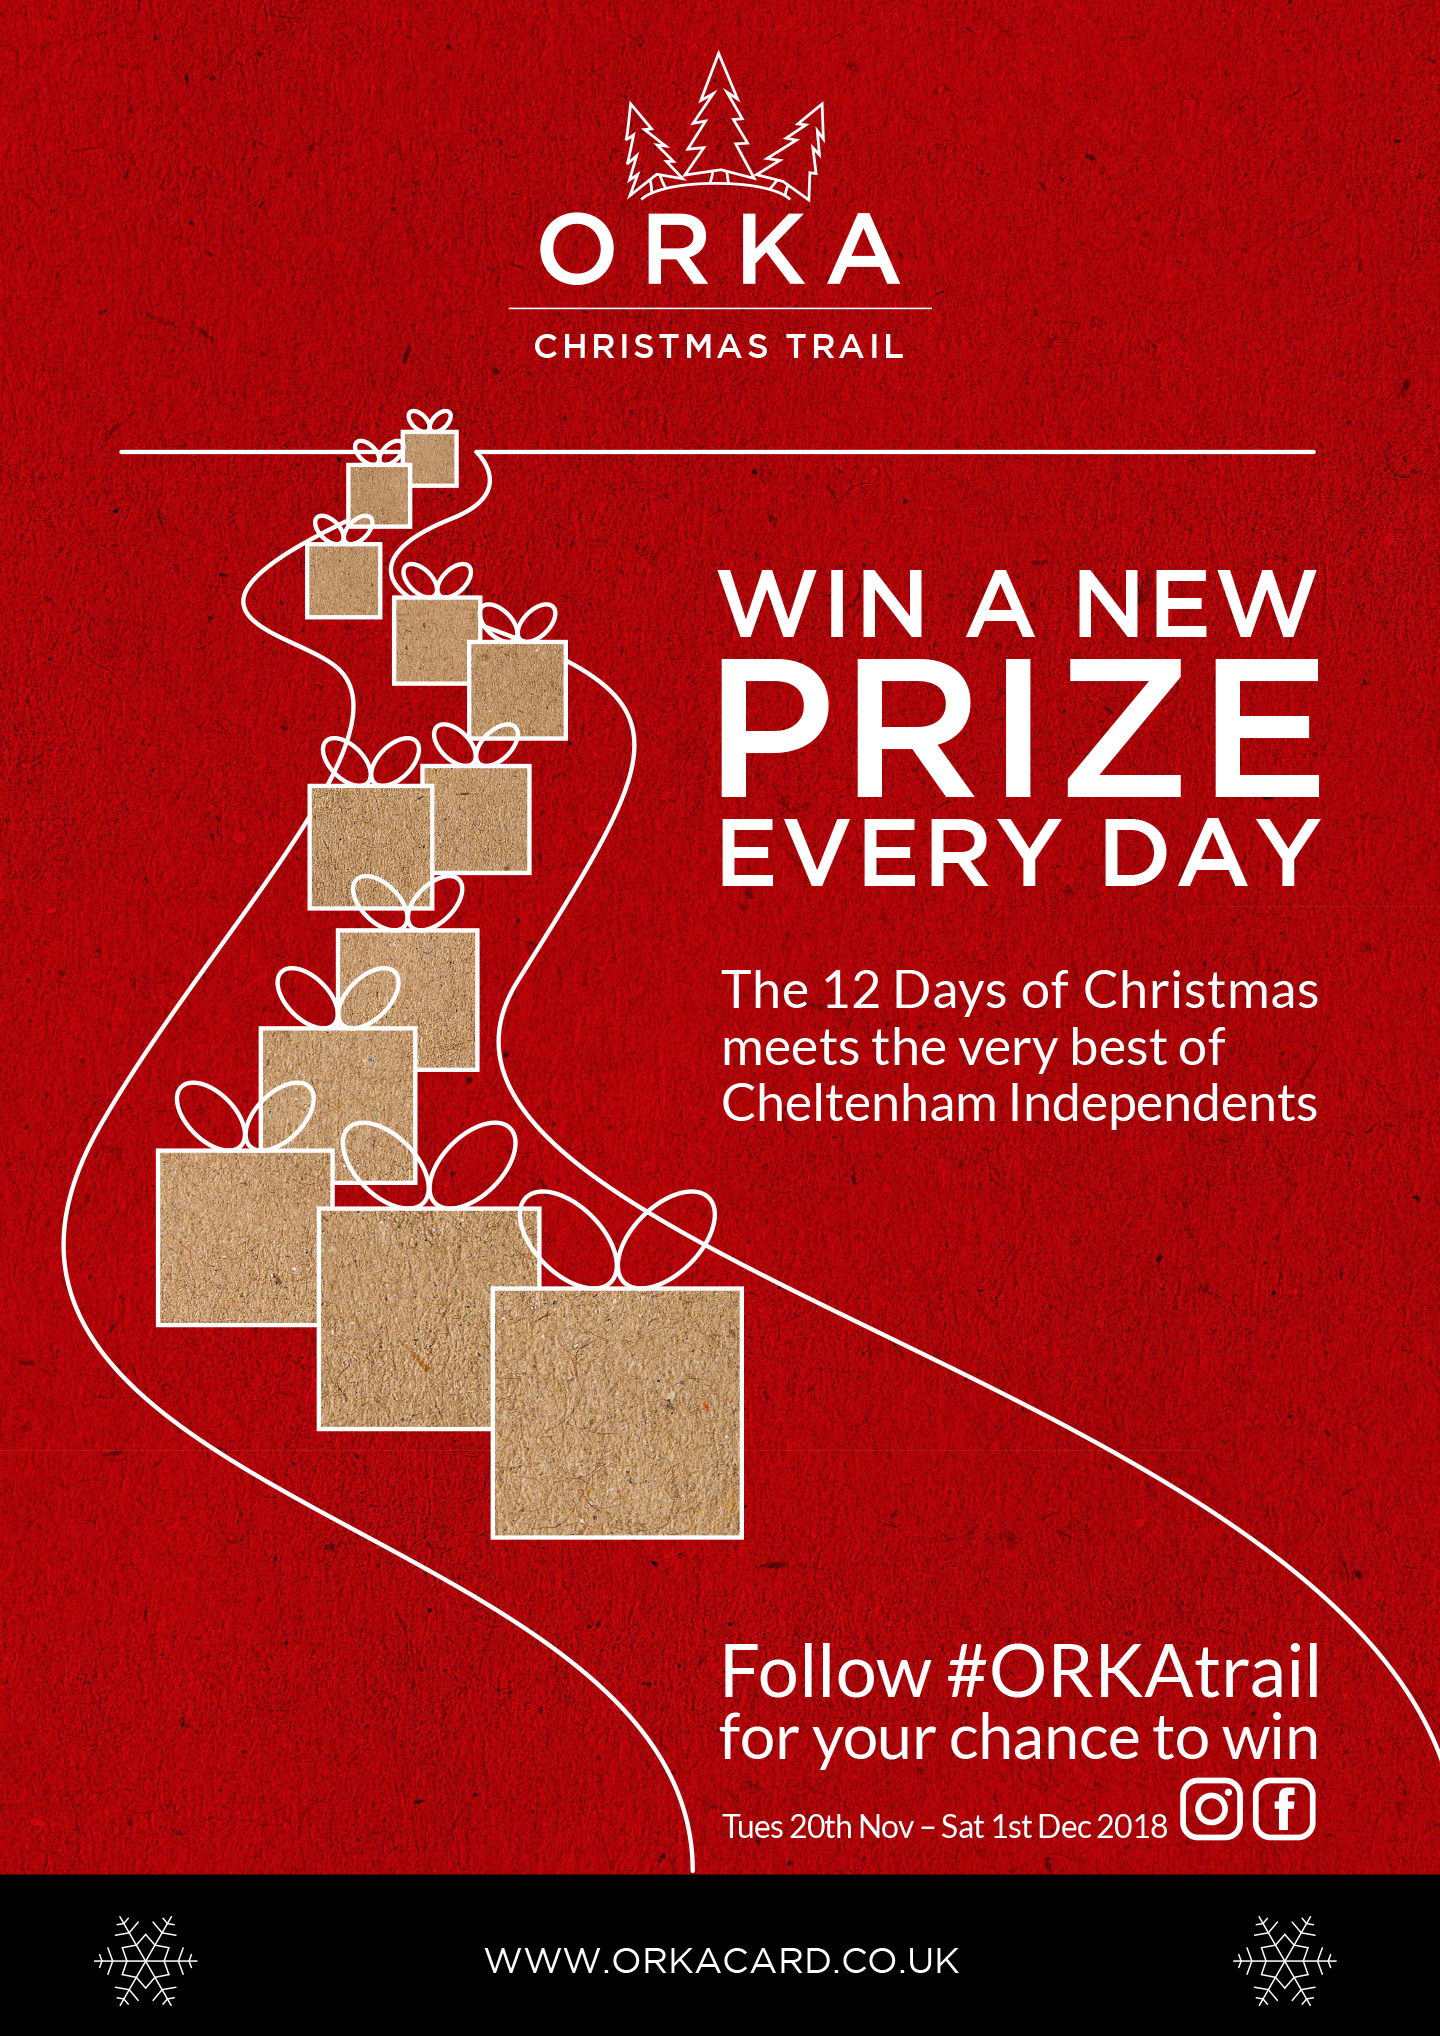 http://rusyndesign.co.uk/wp-content/uploads/2021/02/ORKA-Xmas-trail-A3-poster.jpg